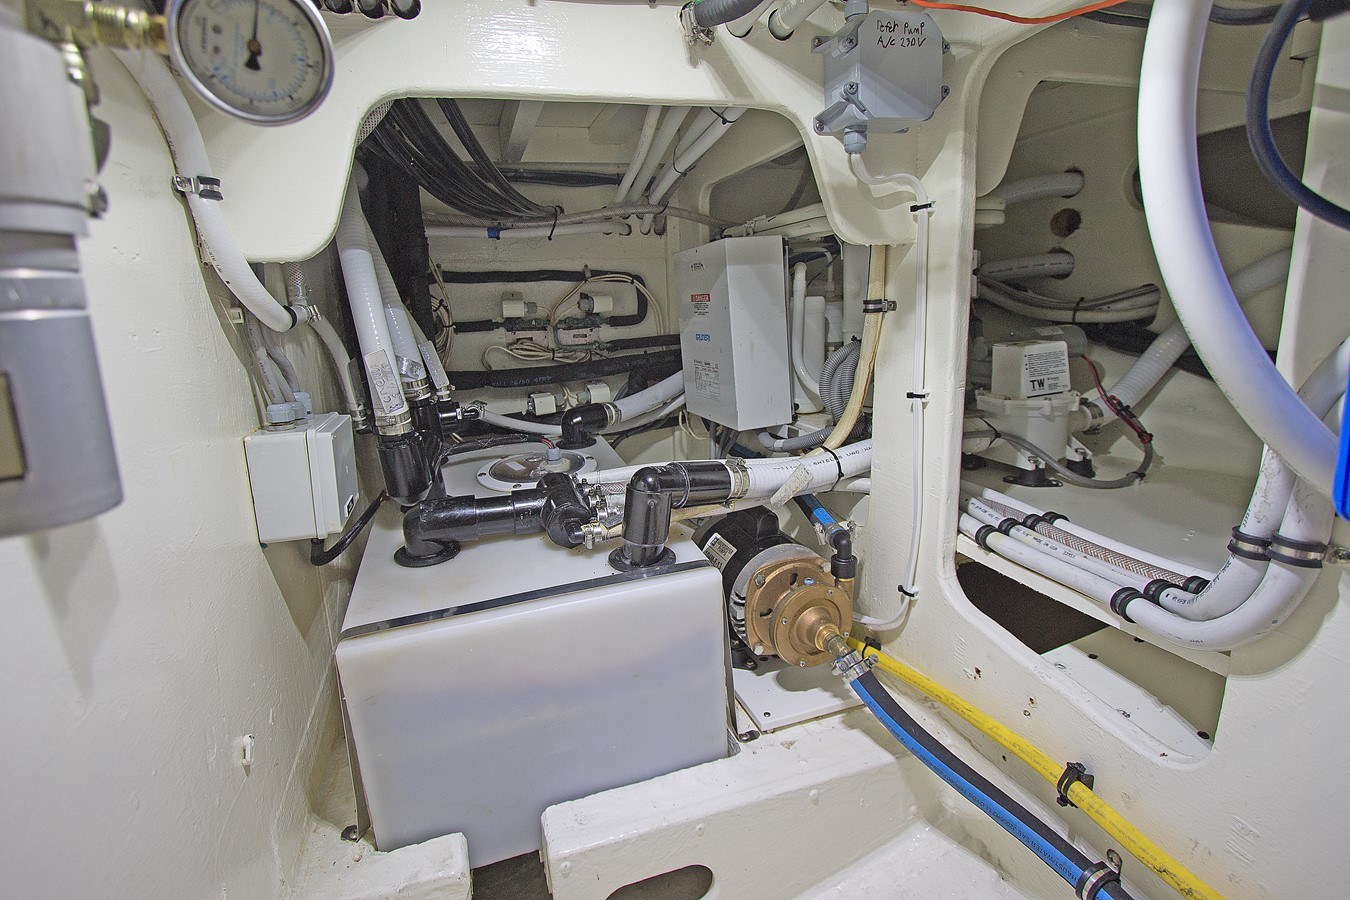 Under Deck Equipment 1986 GULFSTAR Enclosed Cockpit Center Cockpit 2448540